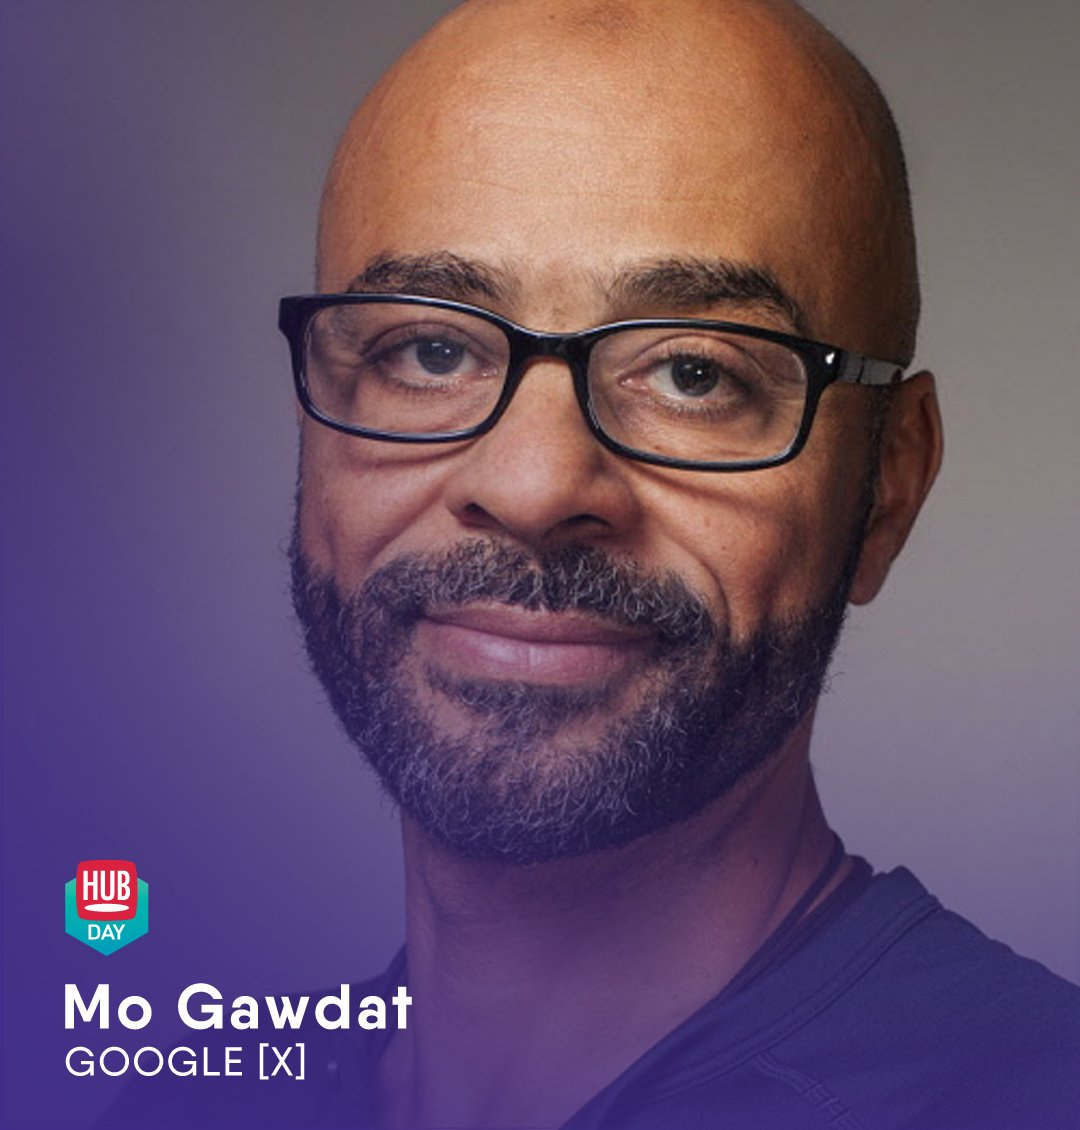 Did you find the equation for happiness? Don&#39;t miss @MGawdat&#39;s talk - Google [X] - on 22 nov #HUBDAY :  http:// conferences.hubinstitute.com/future-of-work/  &nbsp;   #solveforhappy<br>http://pic.twitter.com/1hmfBMaCXR